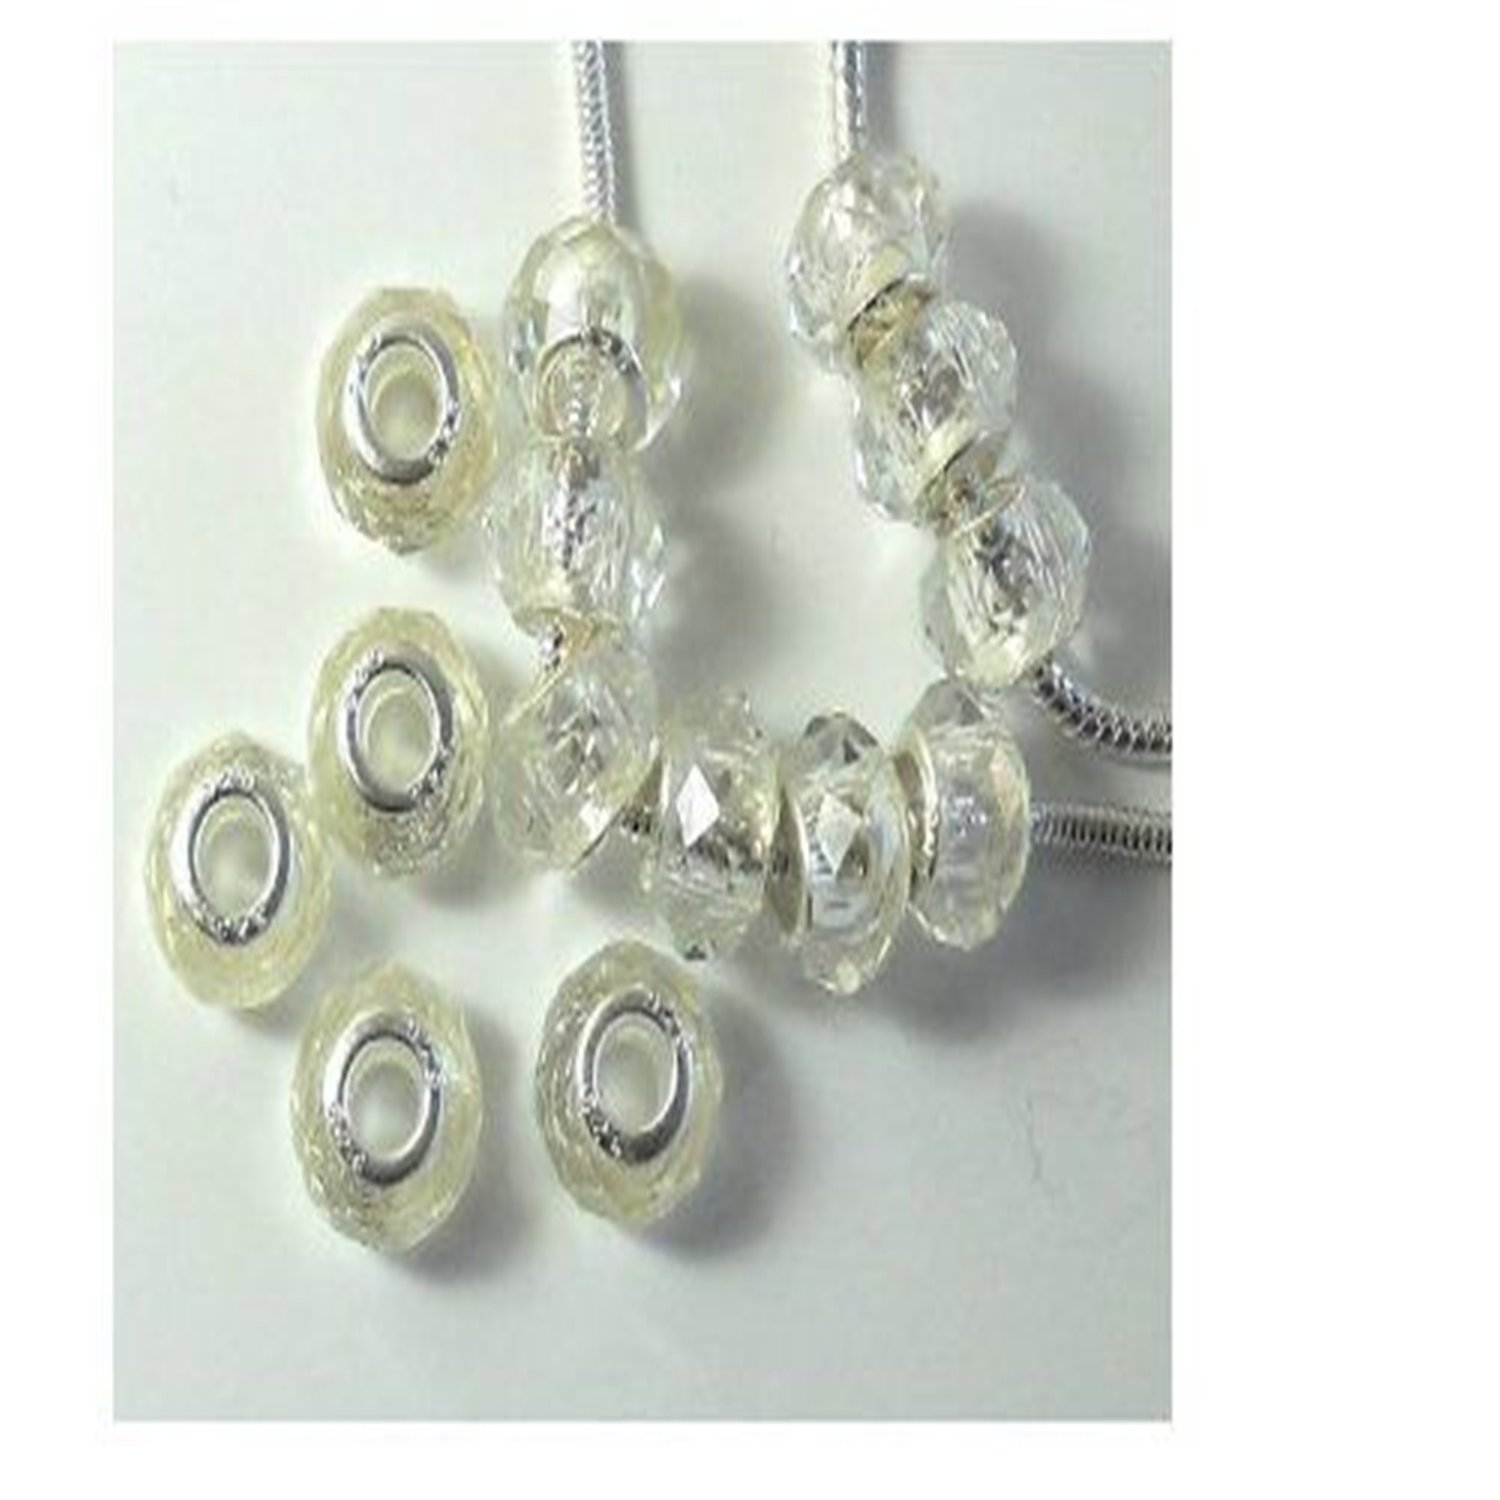 14 Beads Faceted Crystal Glass Large 5.5mm Hole Silver Core Clear Compatible with Pandora, Biagi, Troll, Chamilia, Caprice, Dione Chains